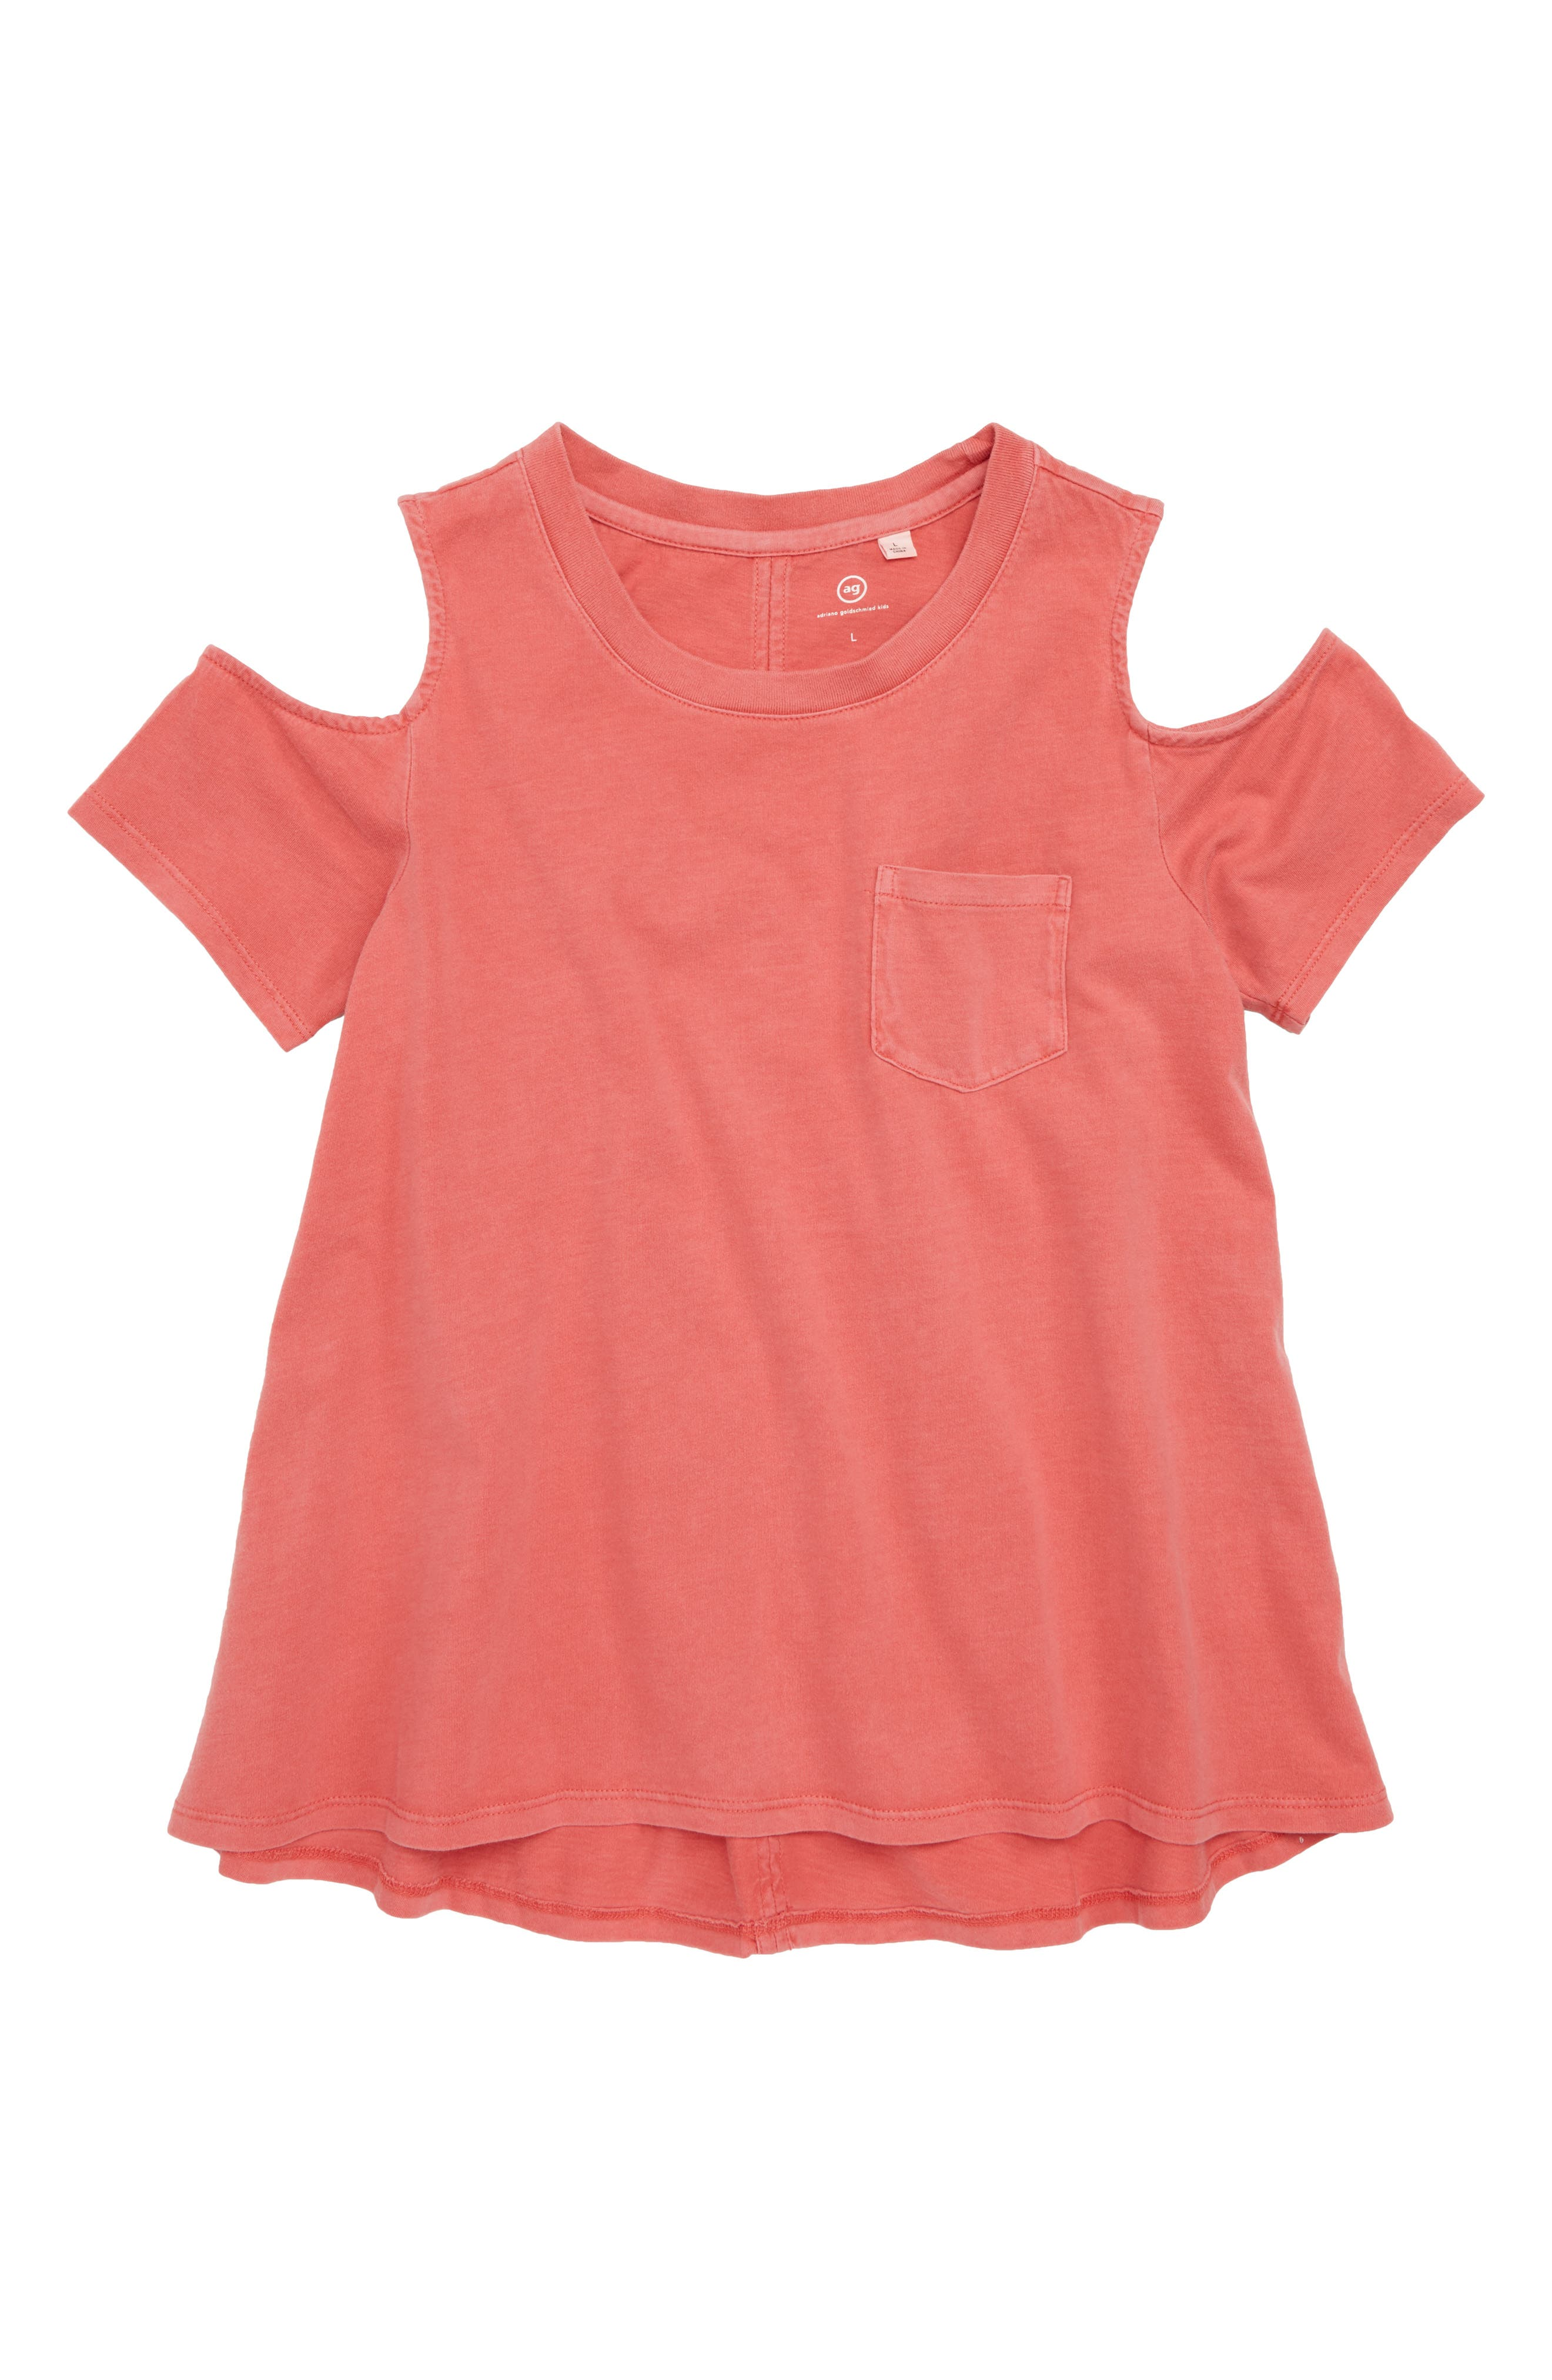 adriano goldschmied kids Tess Cold Shoulder Top,                         Main,                         color, Flame